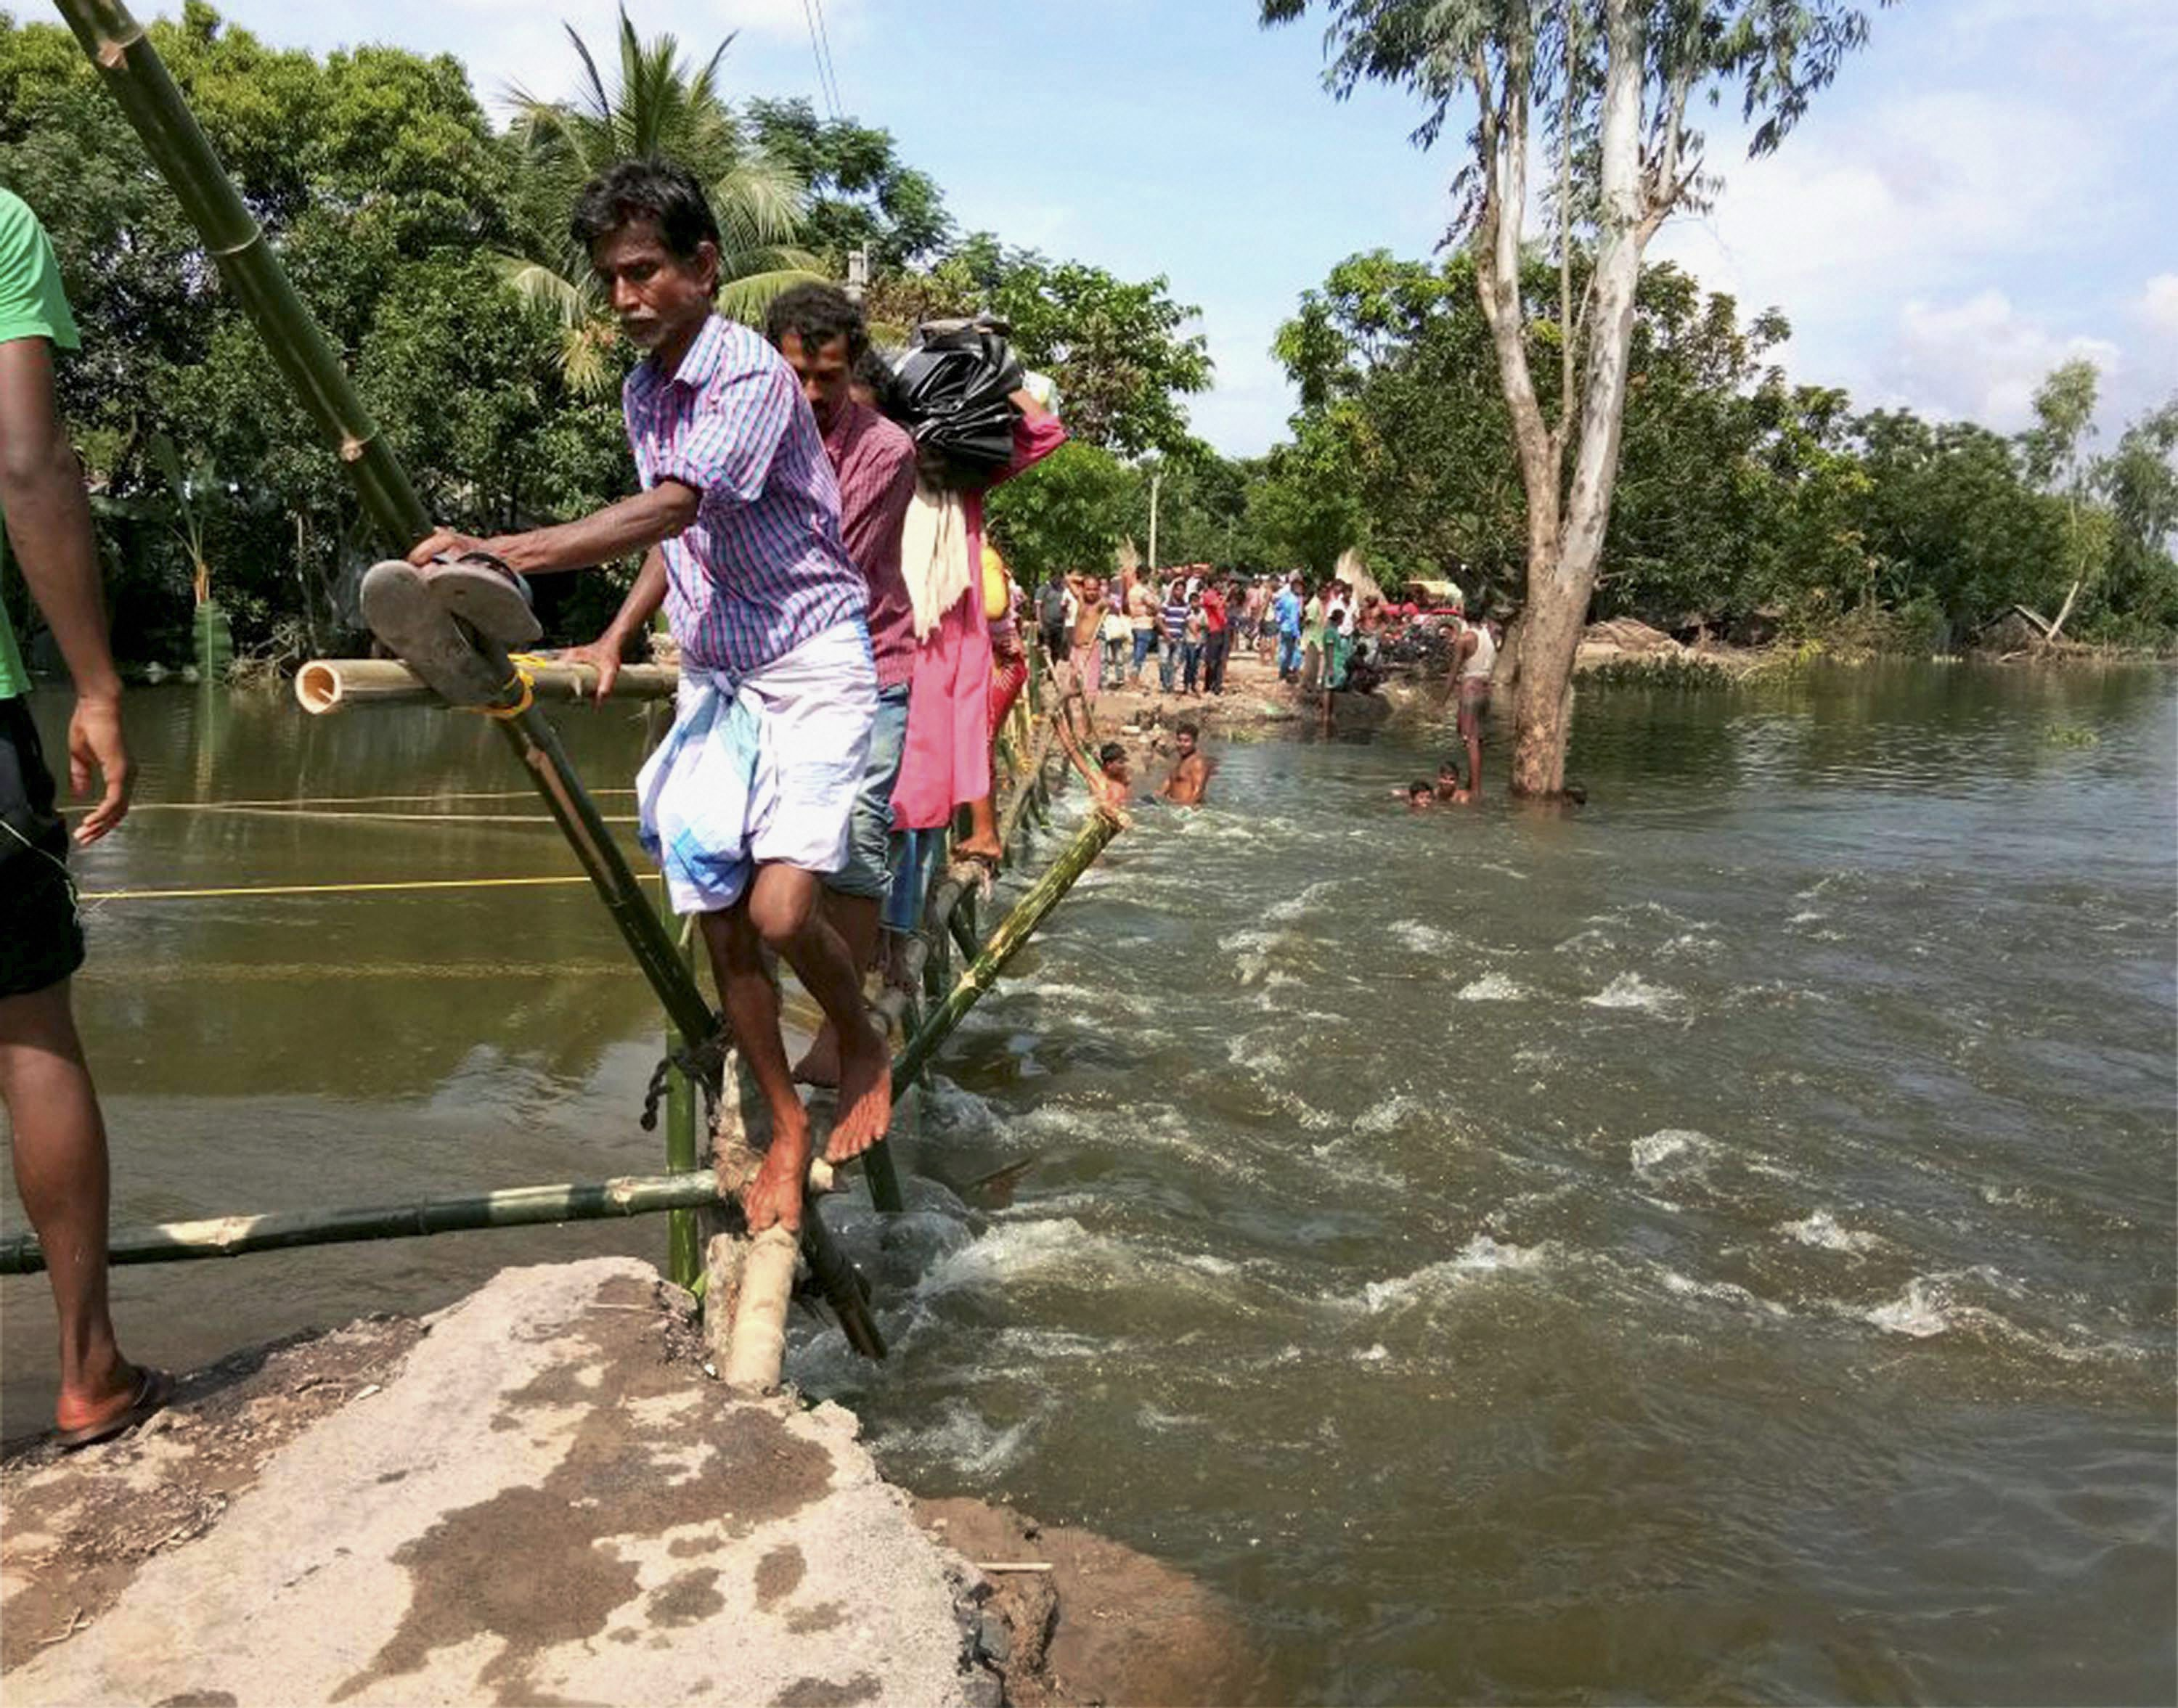 North Dinajpur: Villagers use a makeshift bamboo bridge to cross a flooded locality at Itahar village in North Dinajpur district of West Bengal on Sunday. PTI Photo (PTI8_21_2017_000113B)